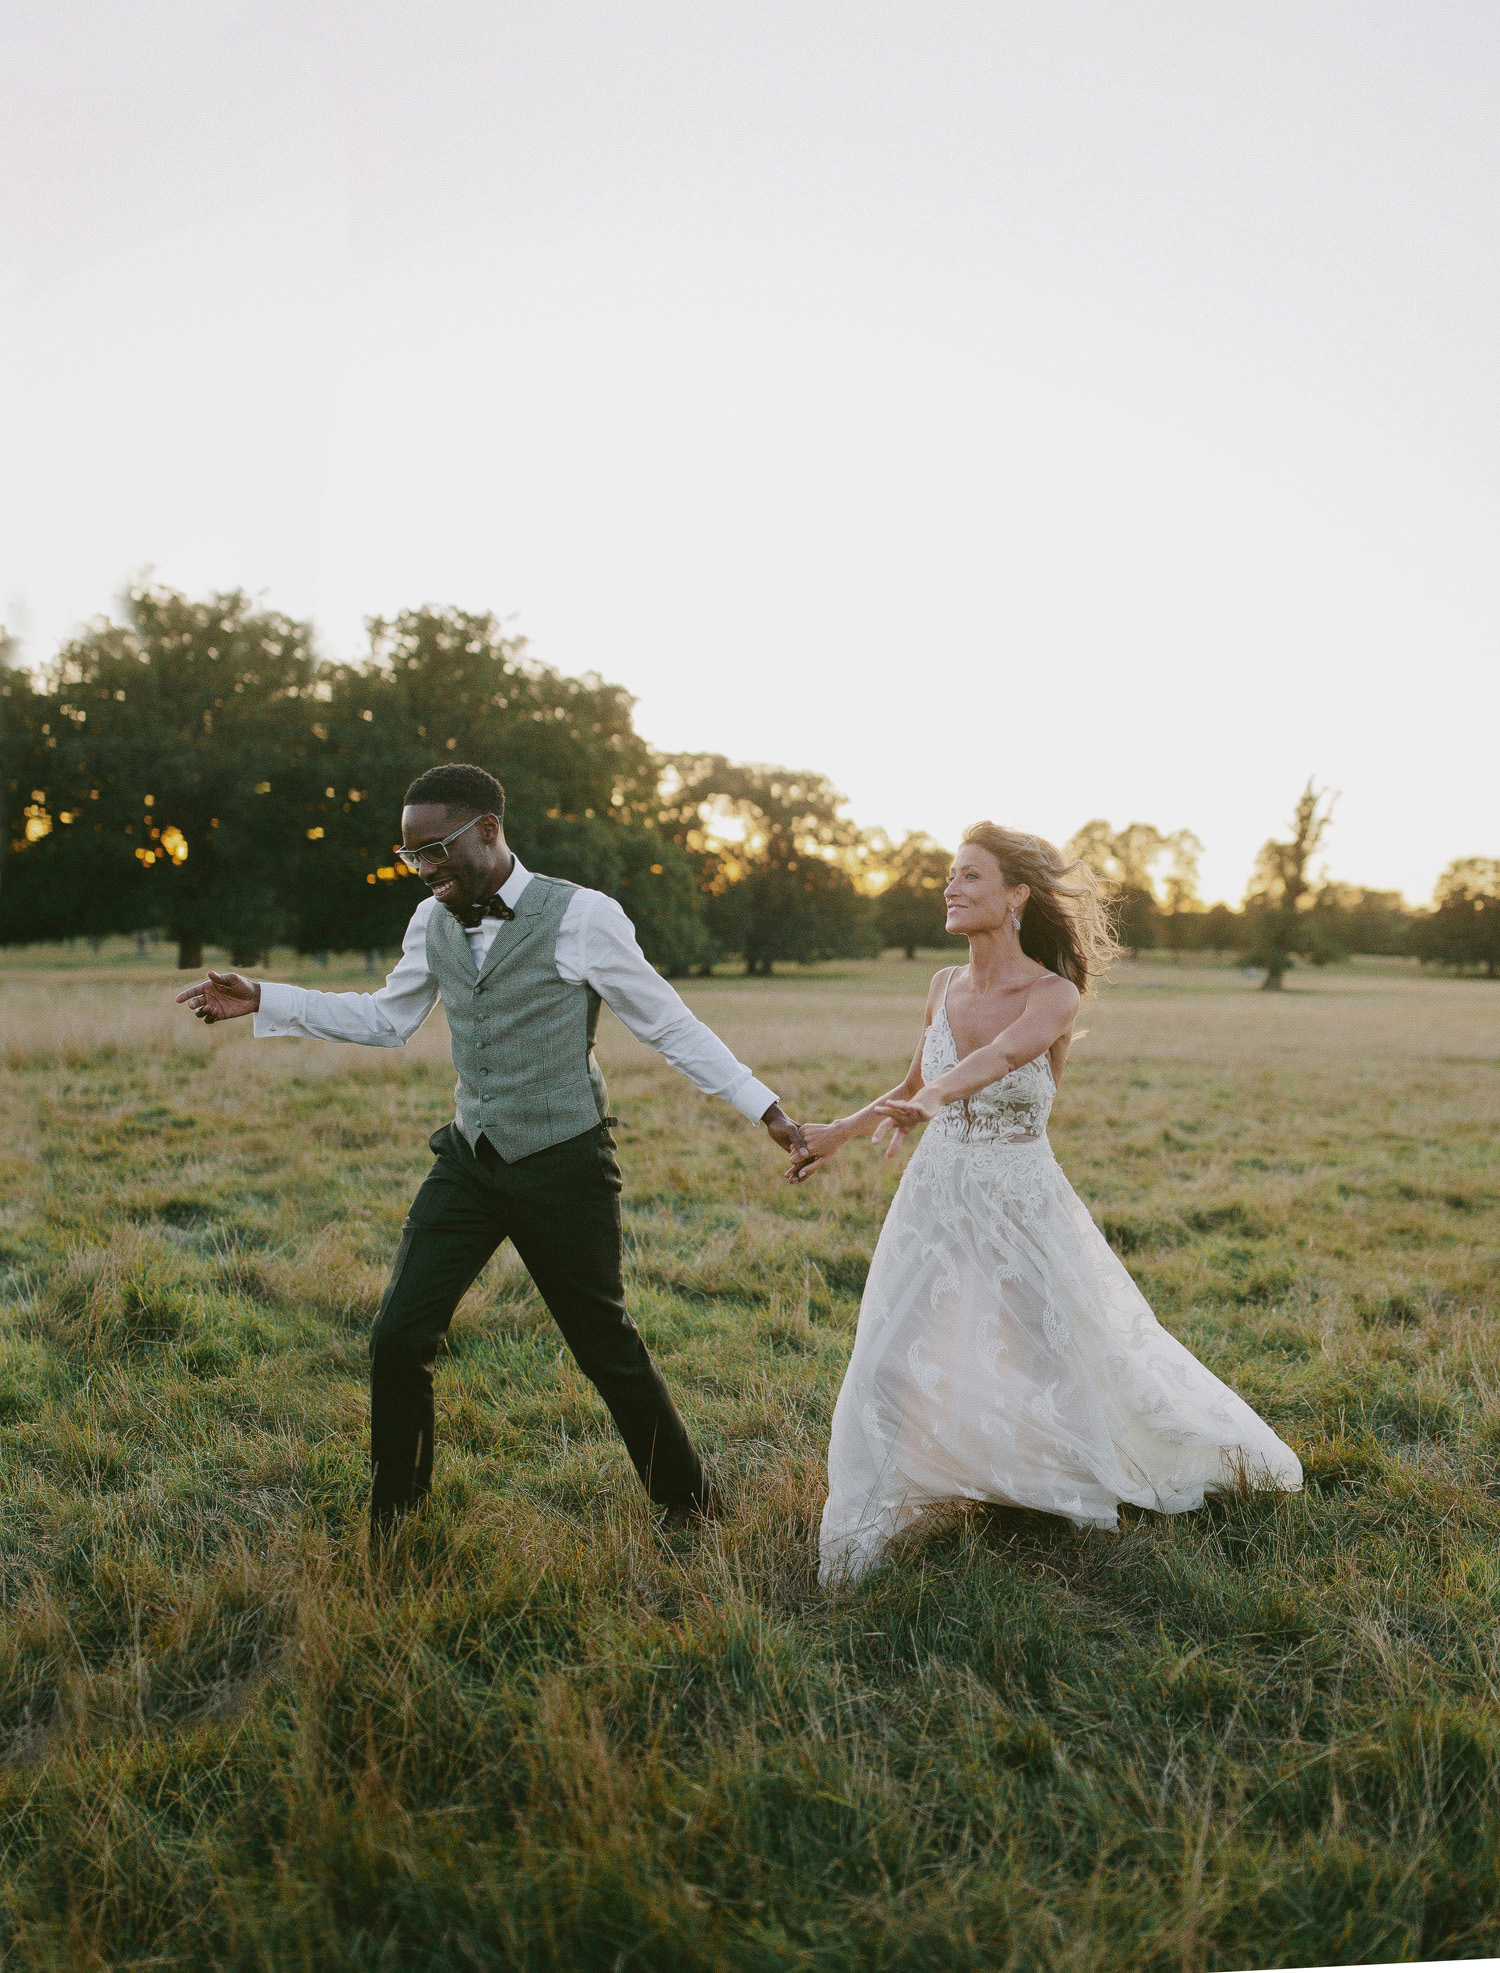 groom in bow tie leads bride in Liz Martinez dress through fields in front of Kirtlington park